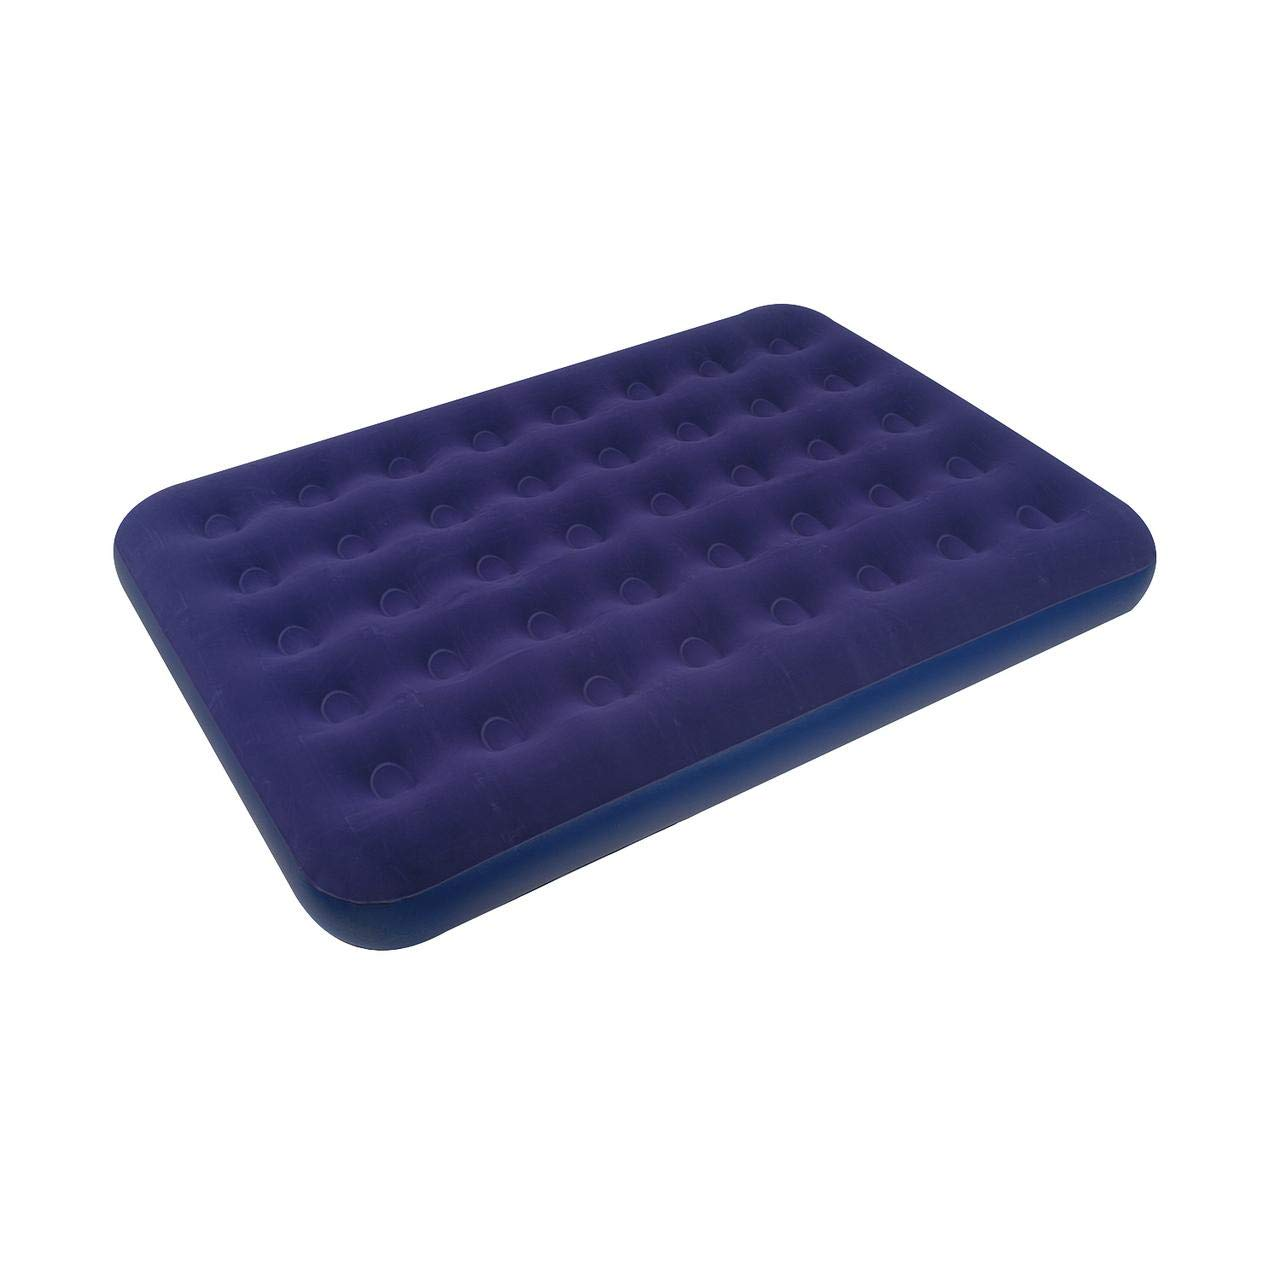 Stansport. Deluxe Air Bed - Full Size 75'' x 54'' x 9''